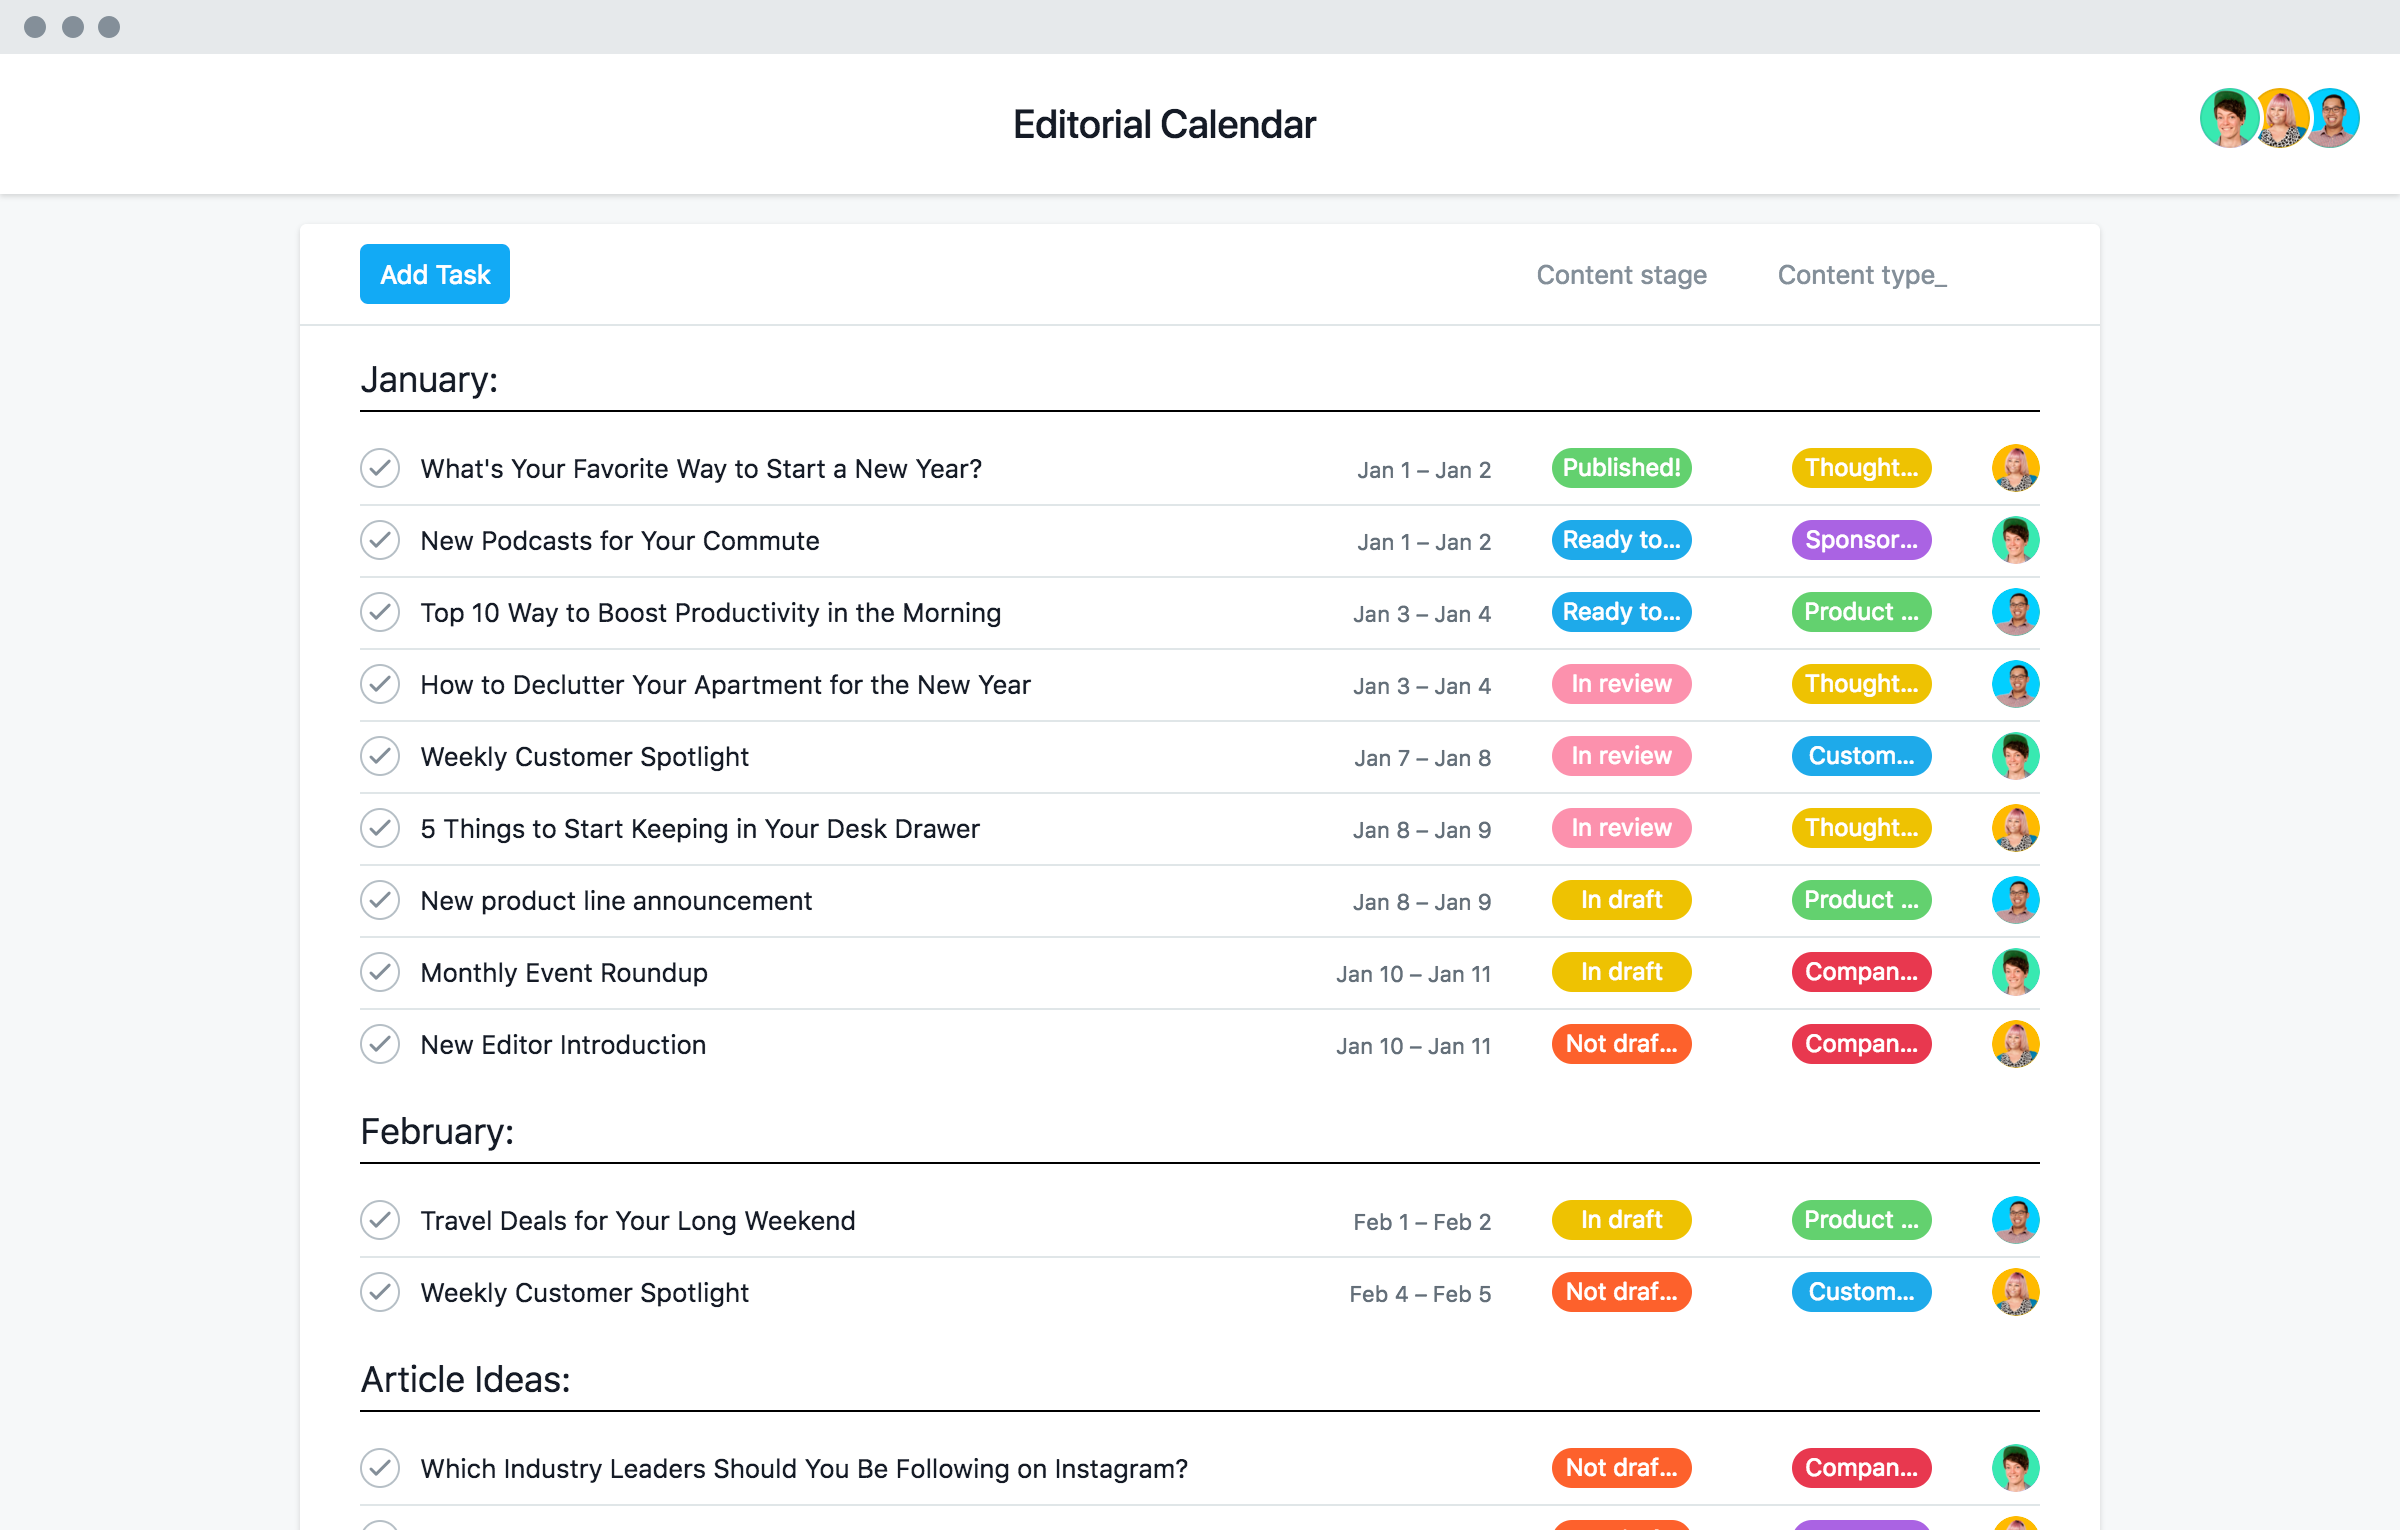 Easy To Adapt Editorial Calendar Template Asana